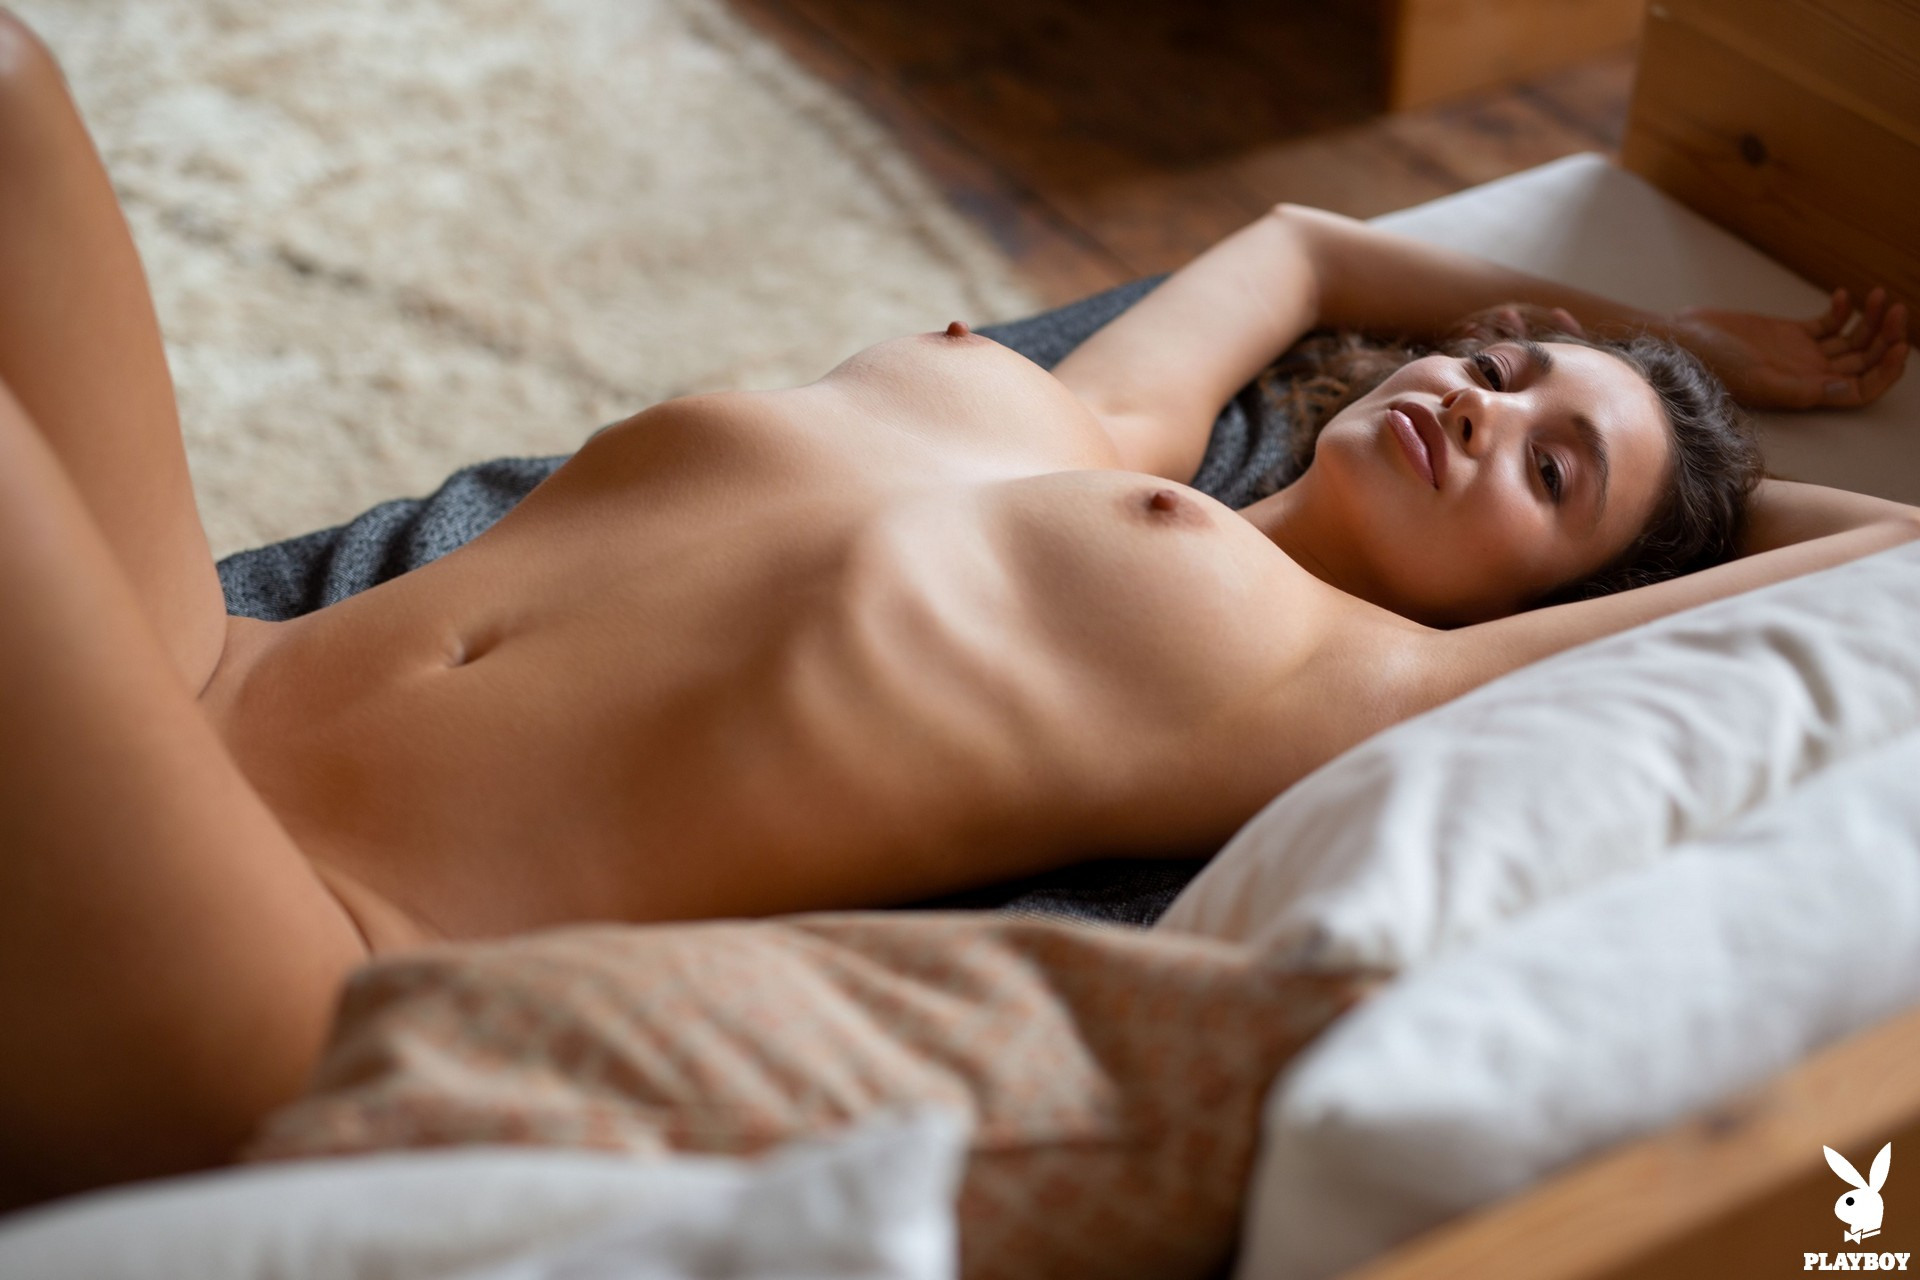 Calypso Muse in Sweet Comforts - Playboy Plus 8